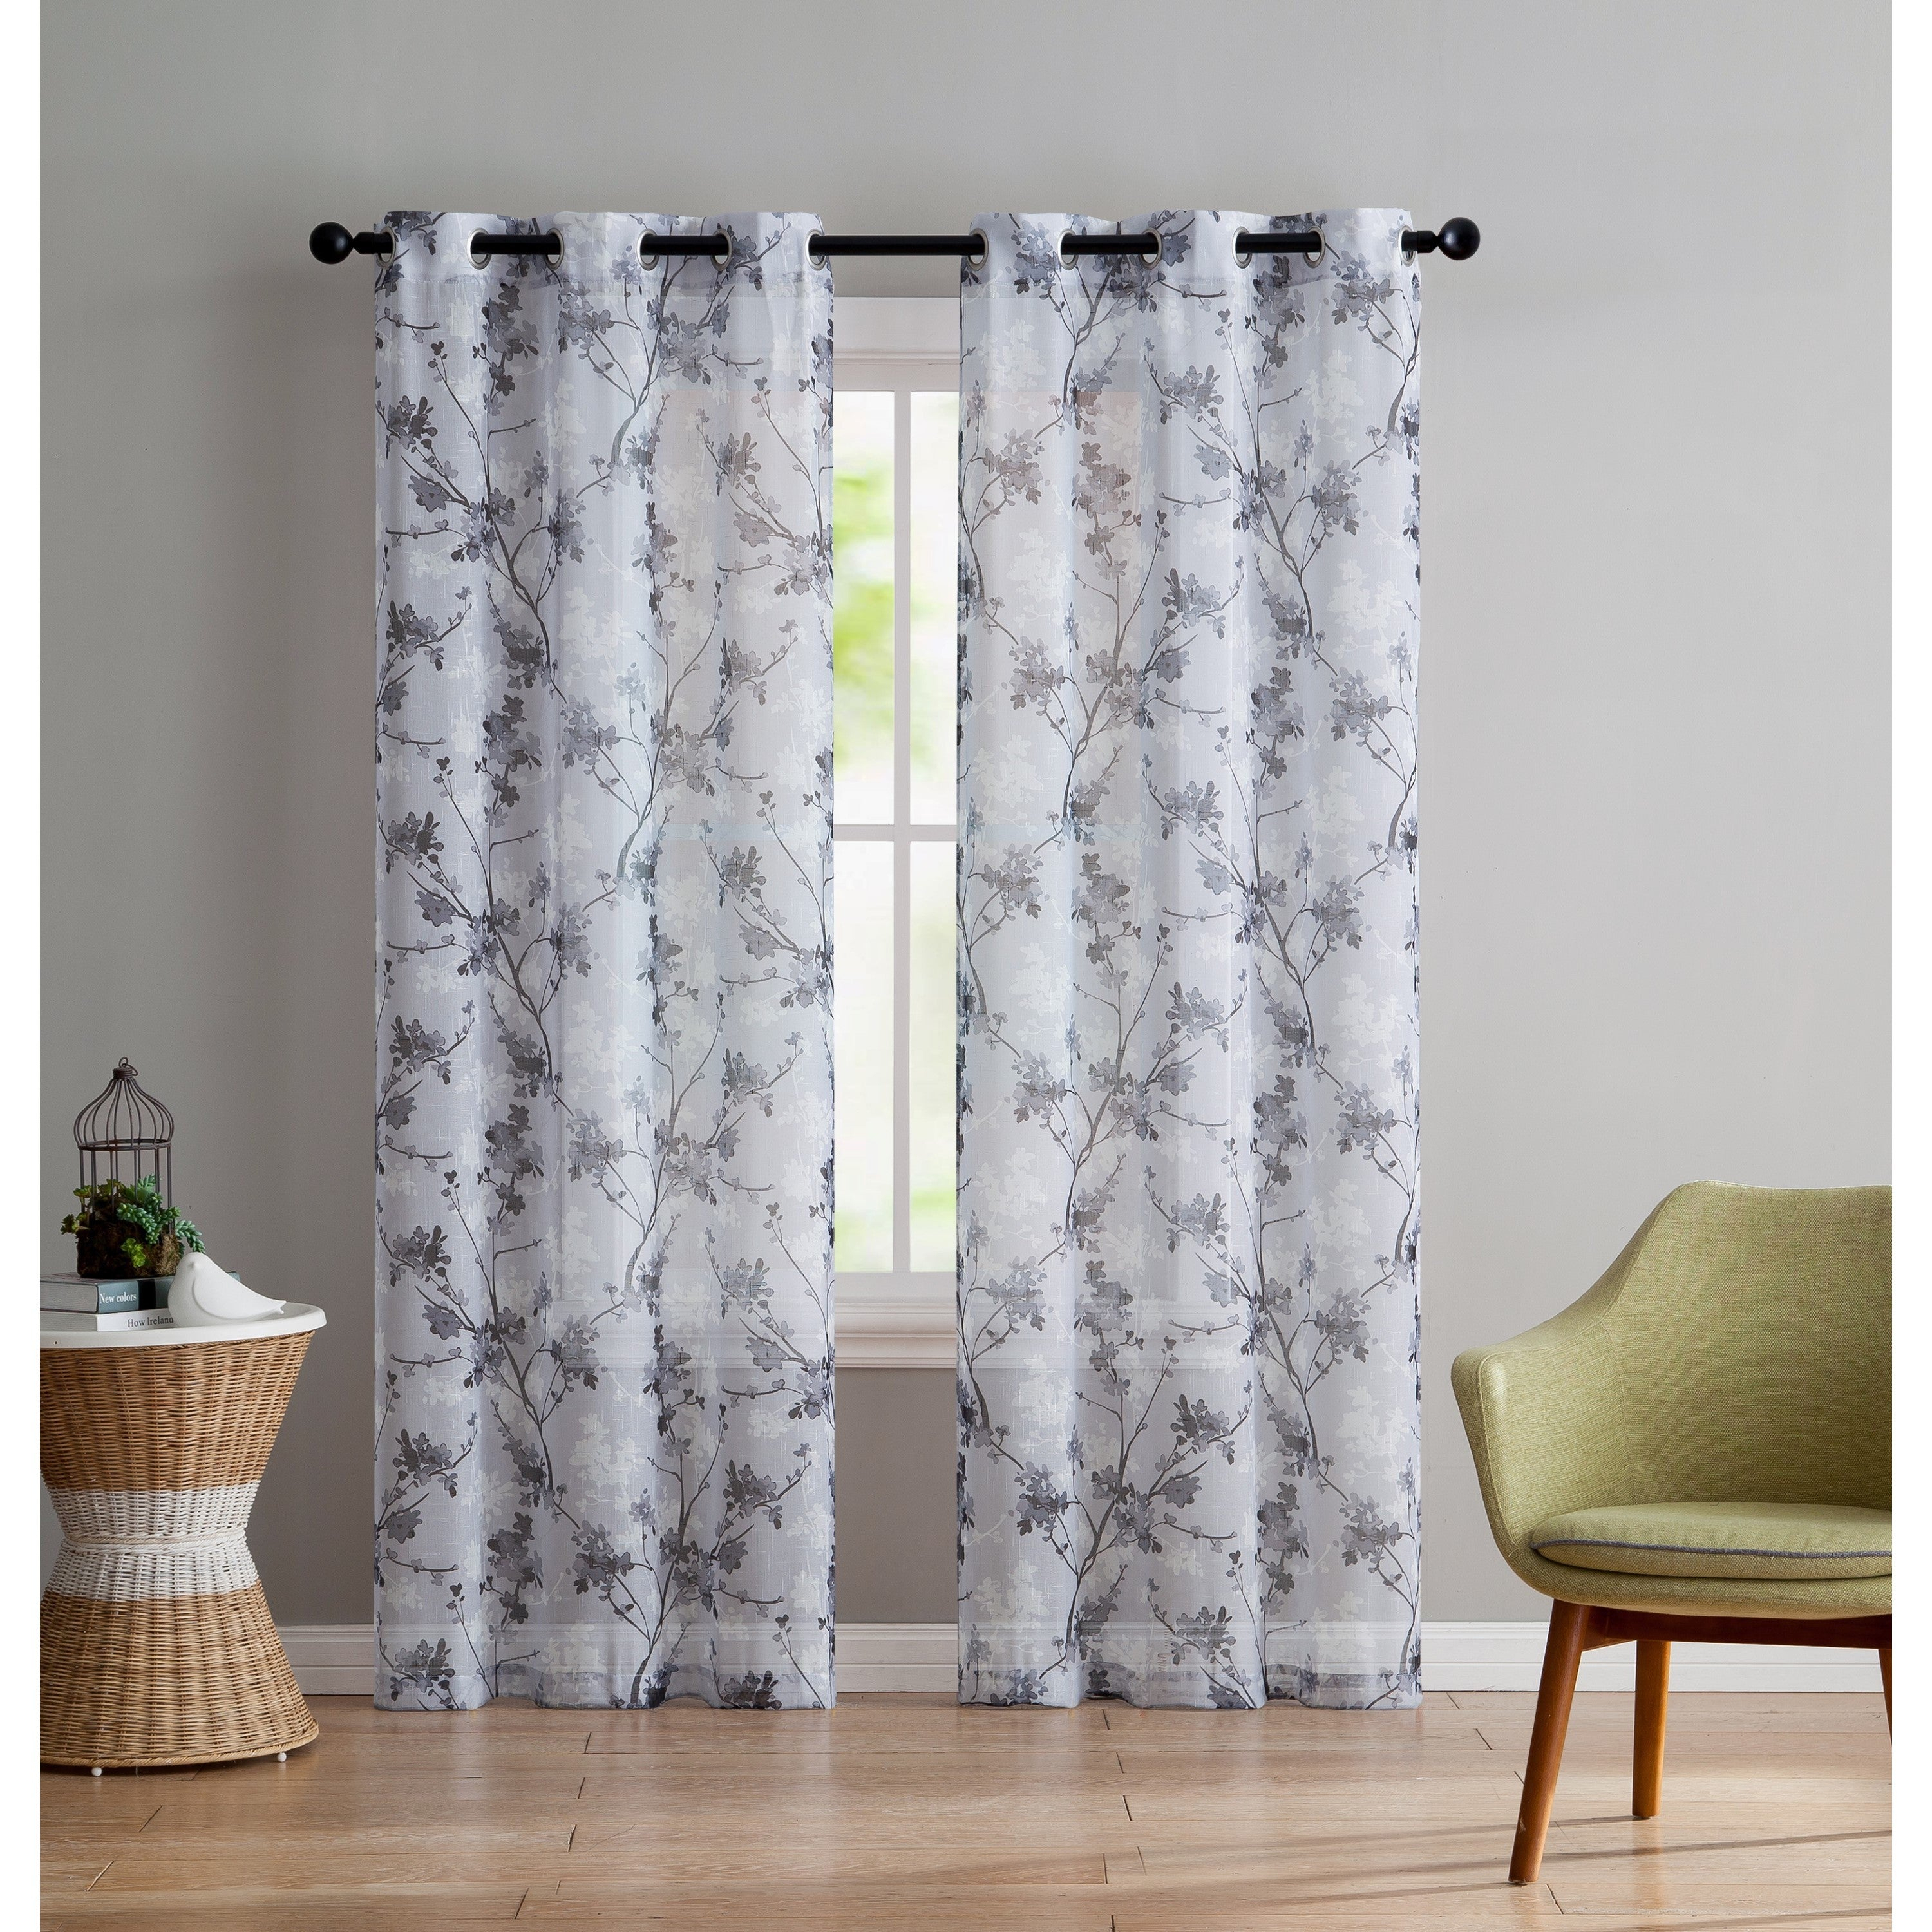 Vcny Home Jasmine Panel Pair With Grey Printed Curtain Panels (View 4 of 20)